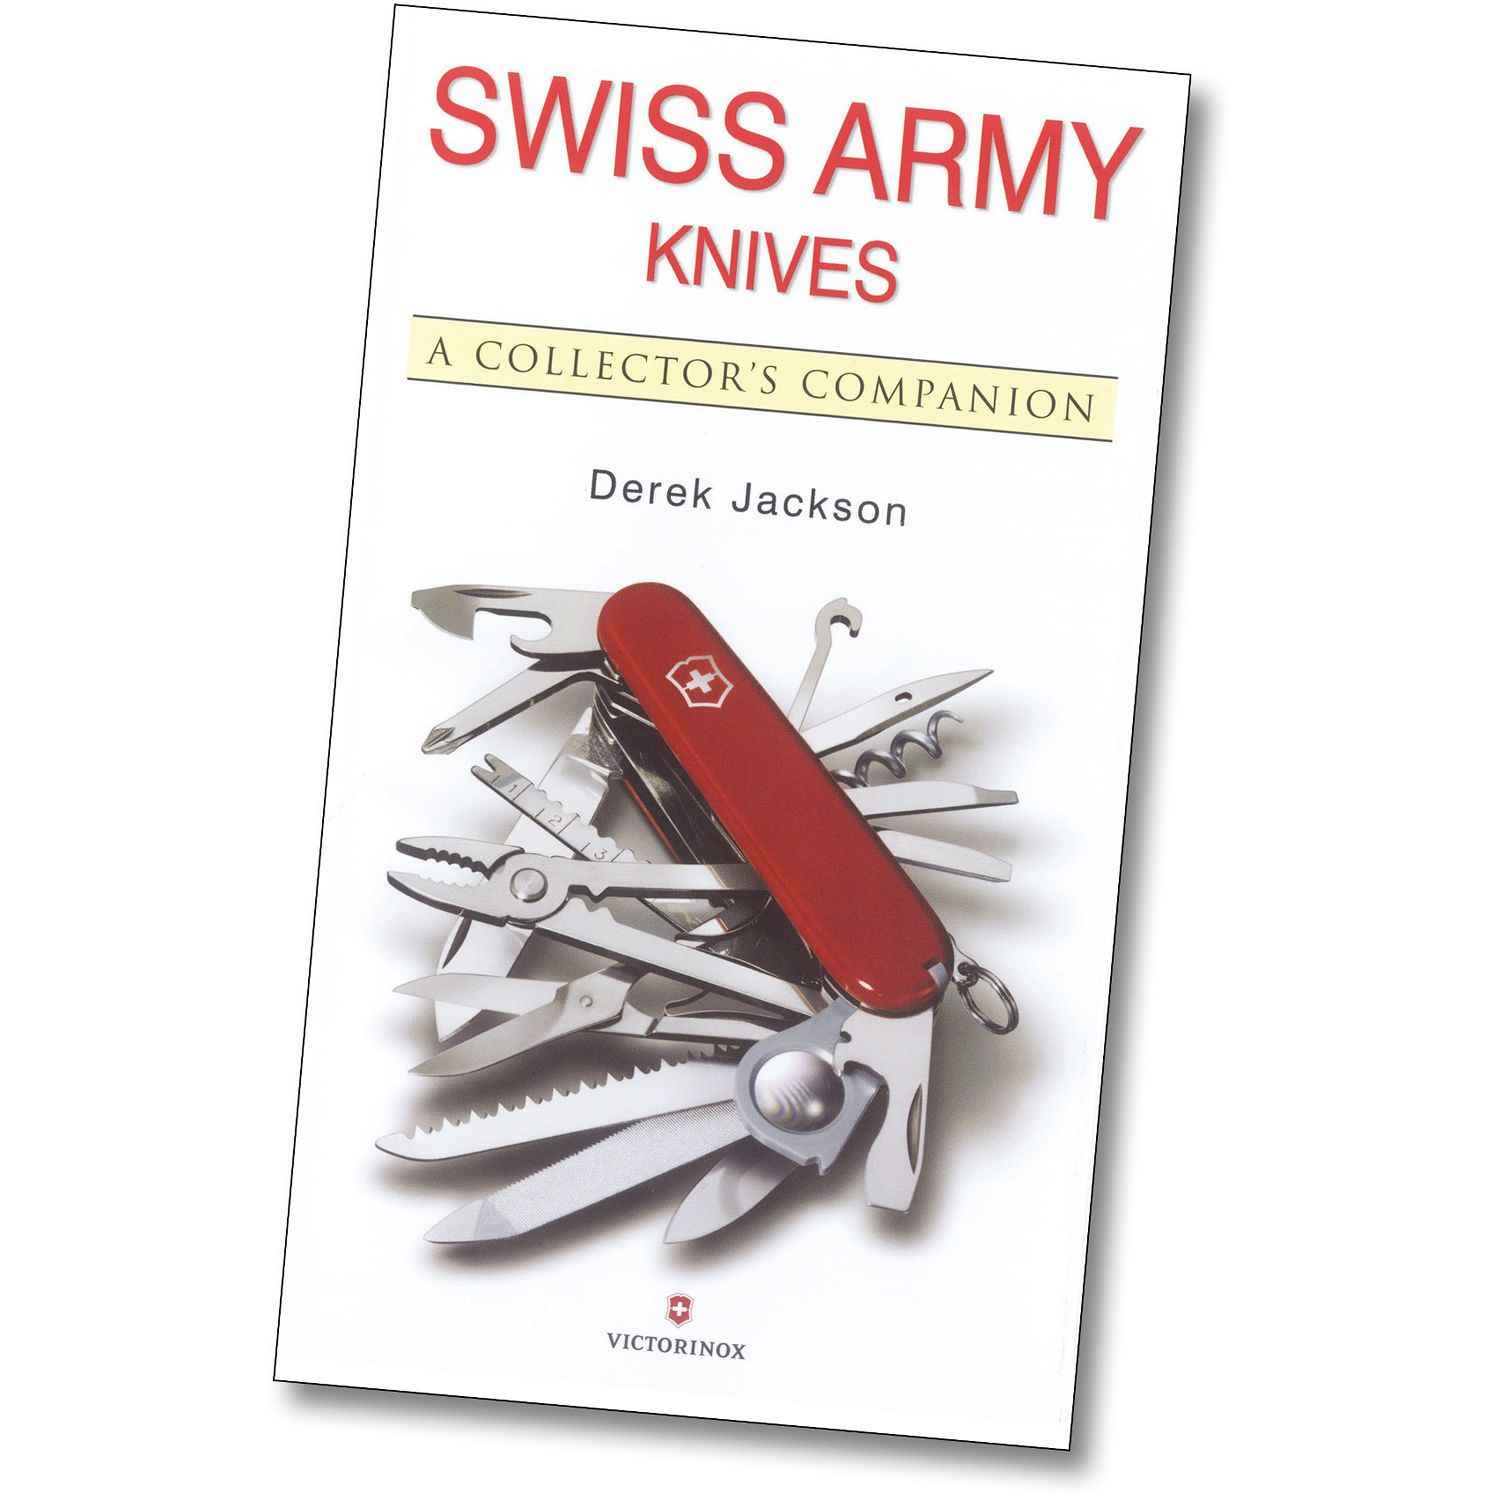 "Livro da Victorinox do Autor Derek Jackson ""Swiss Army Knives: A Collector's Companion"""